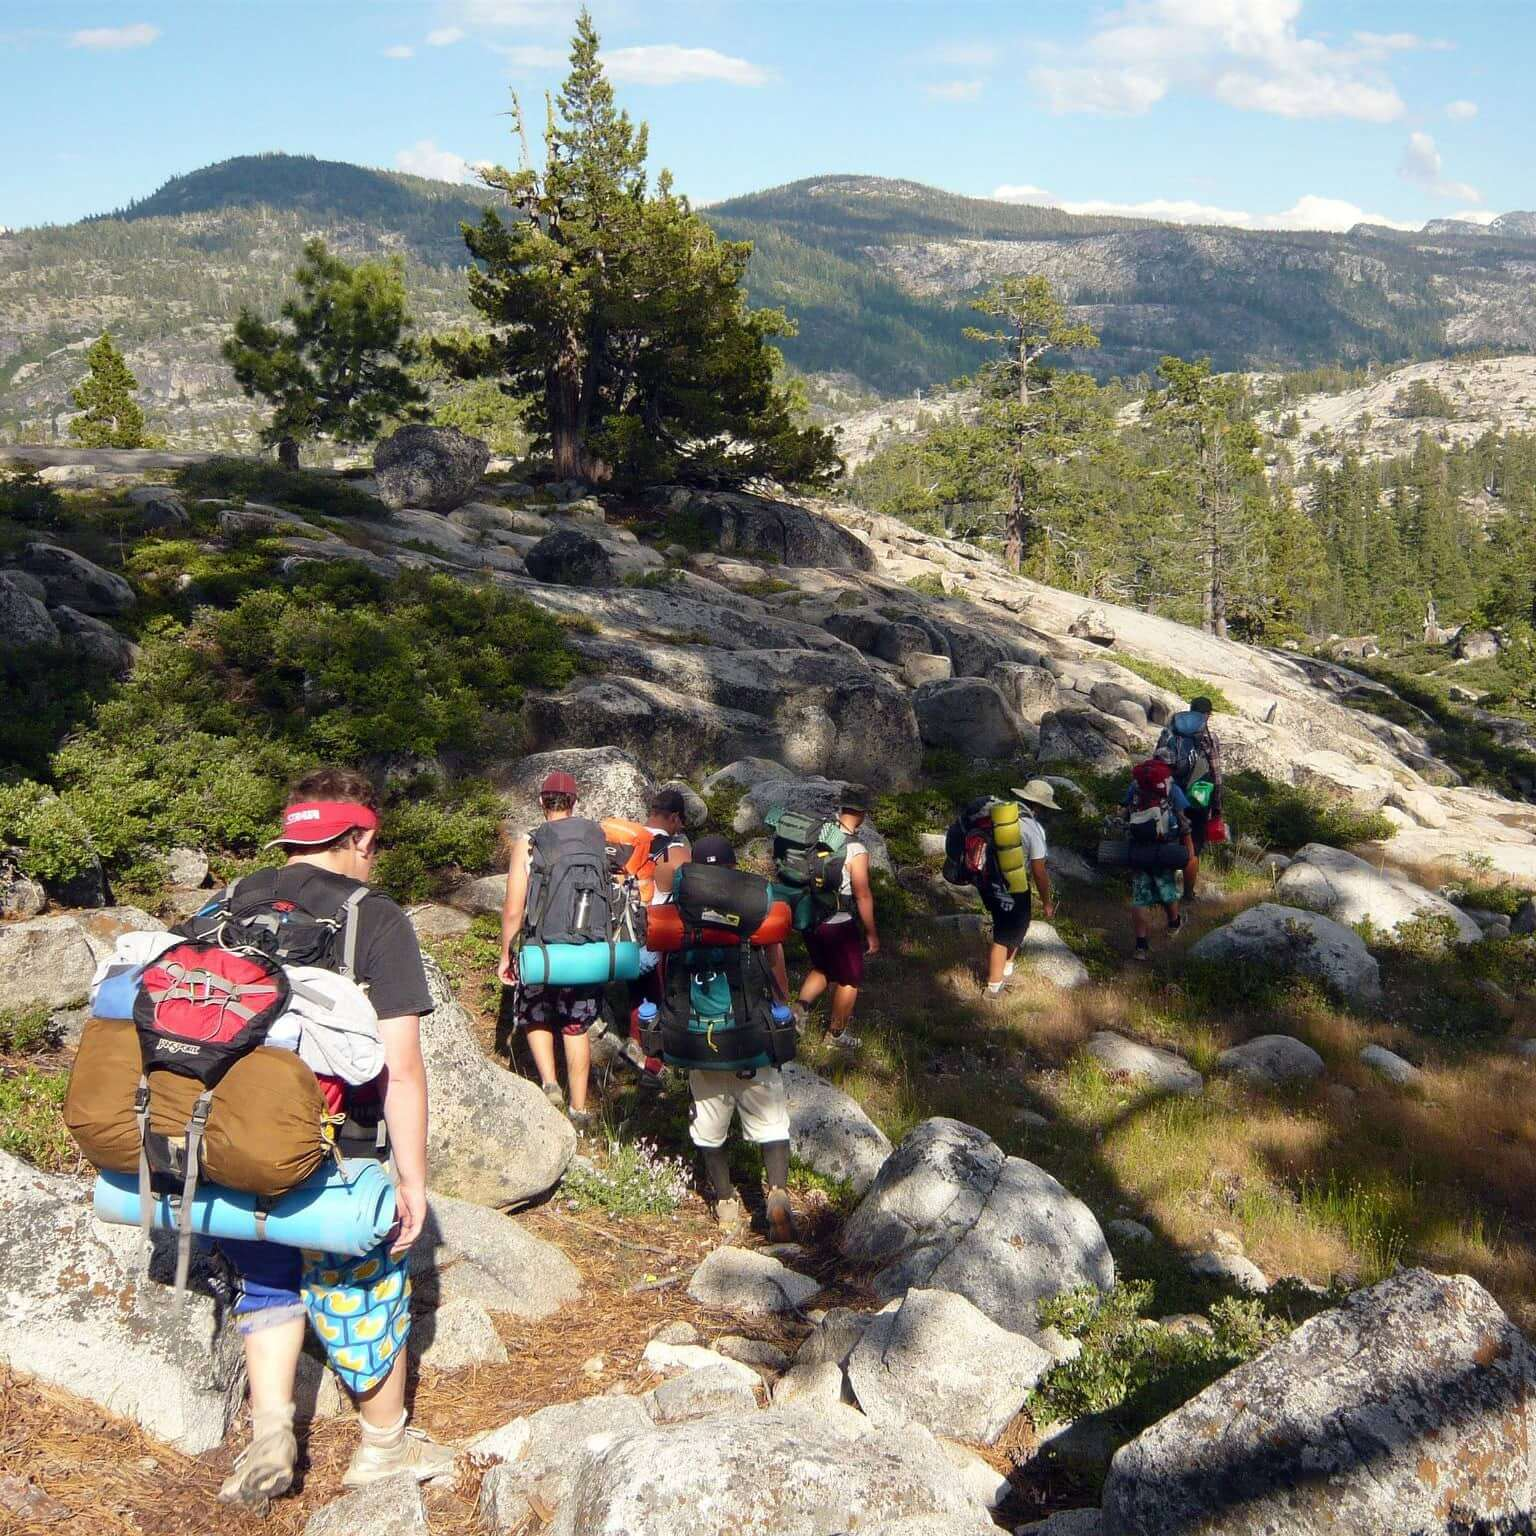 hikers in backcountry with backpacks.